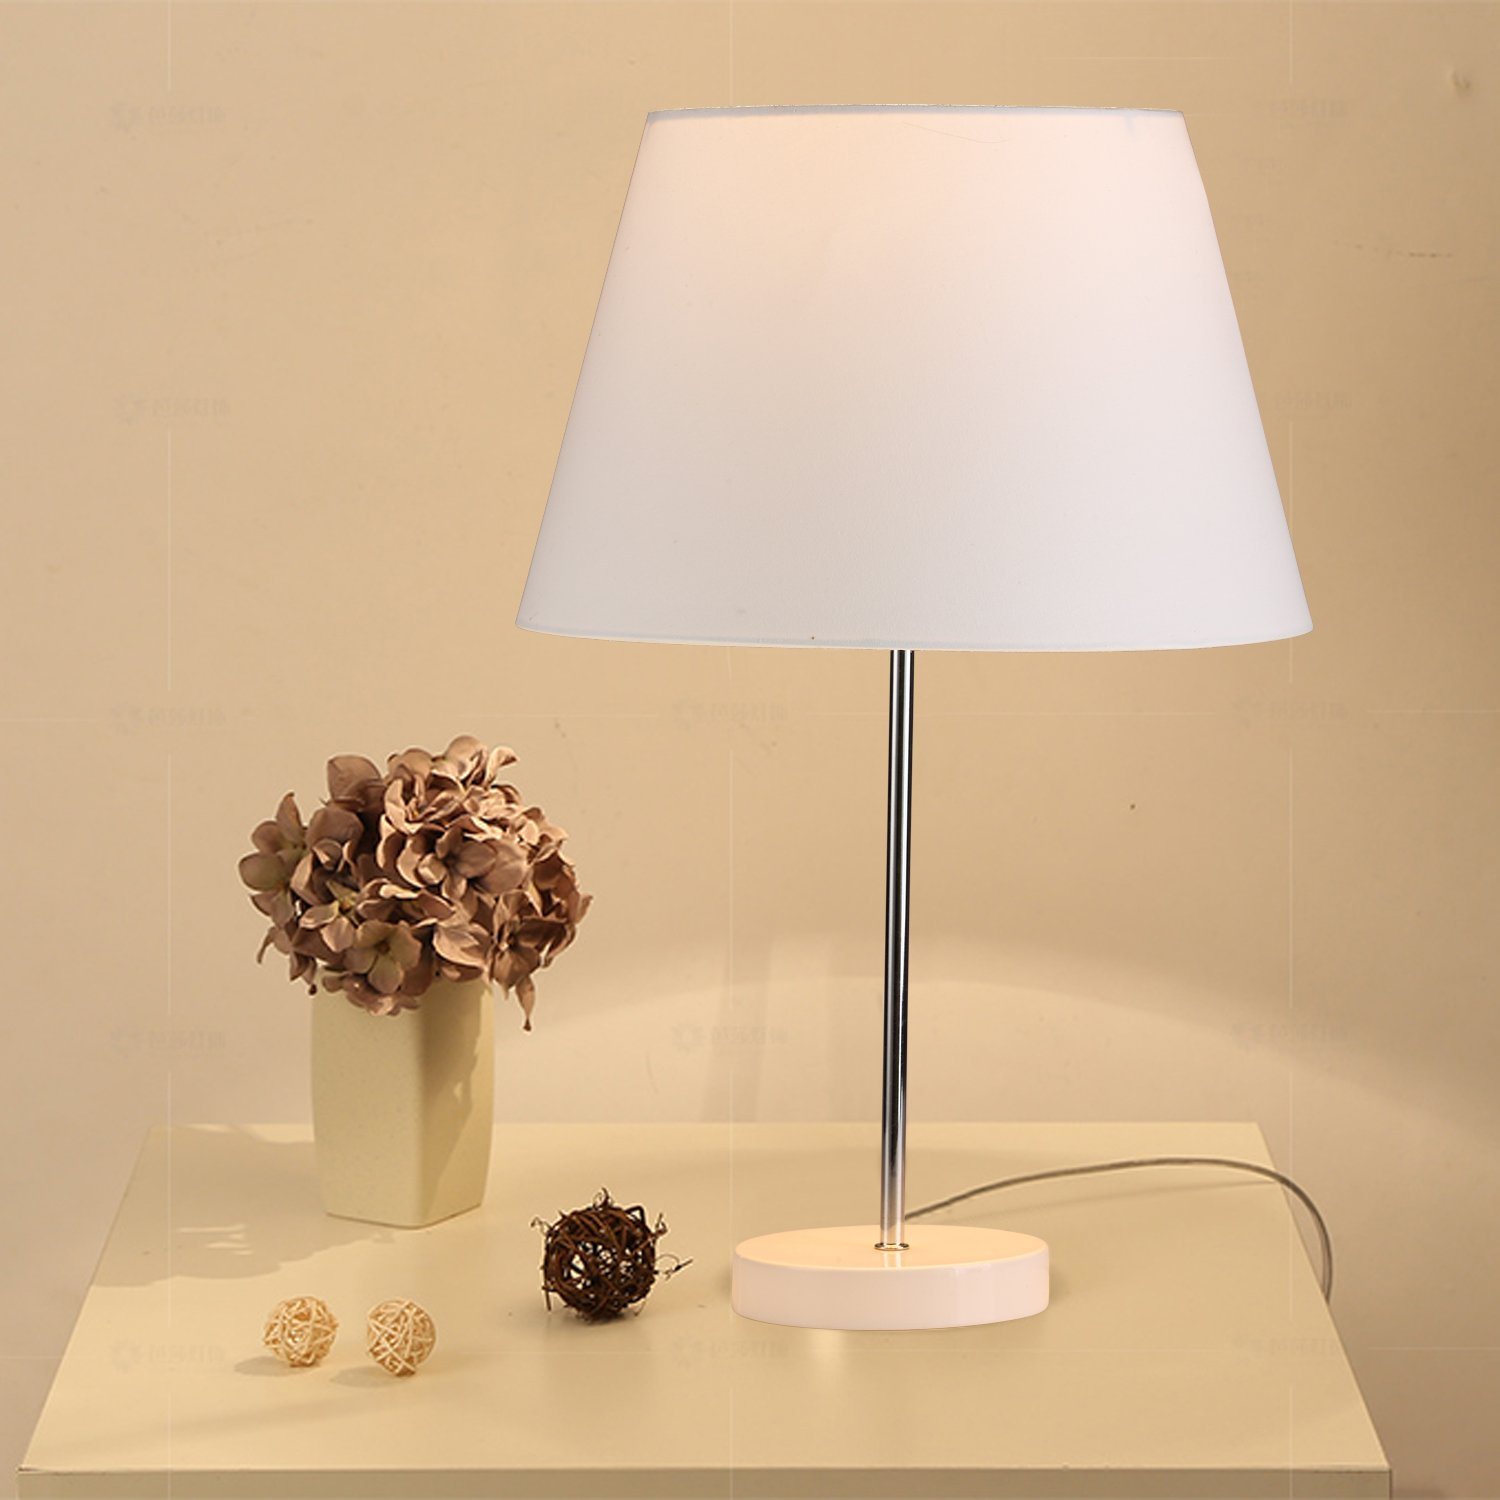 b22a8f87674 Lamp Shade IMISI Desk Lamp Table Lamp Shade Linen Fabric White Reading Lamp  Shades 7.9 X 7.5 X 11.8 Inch Dining Standing White Lamp Shades for Men